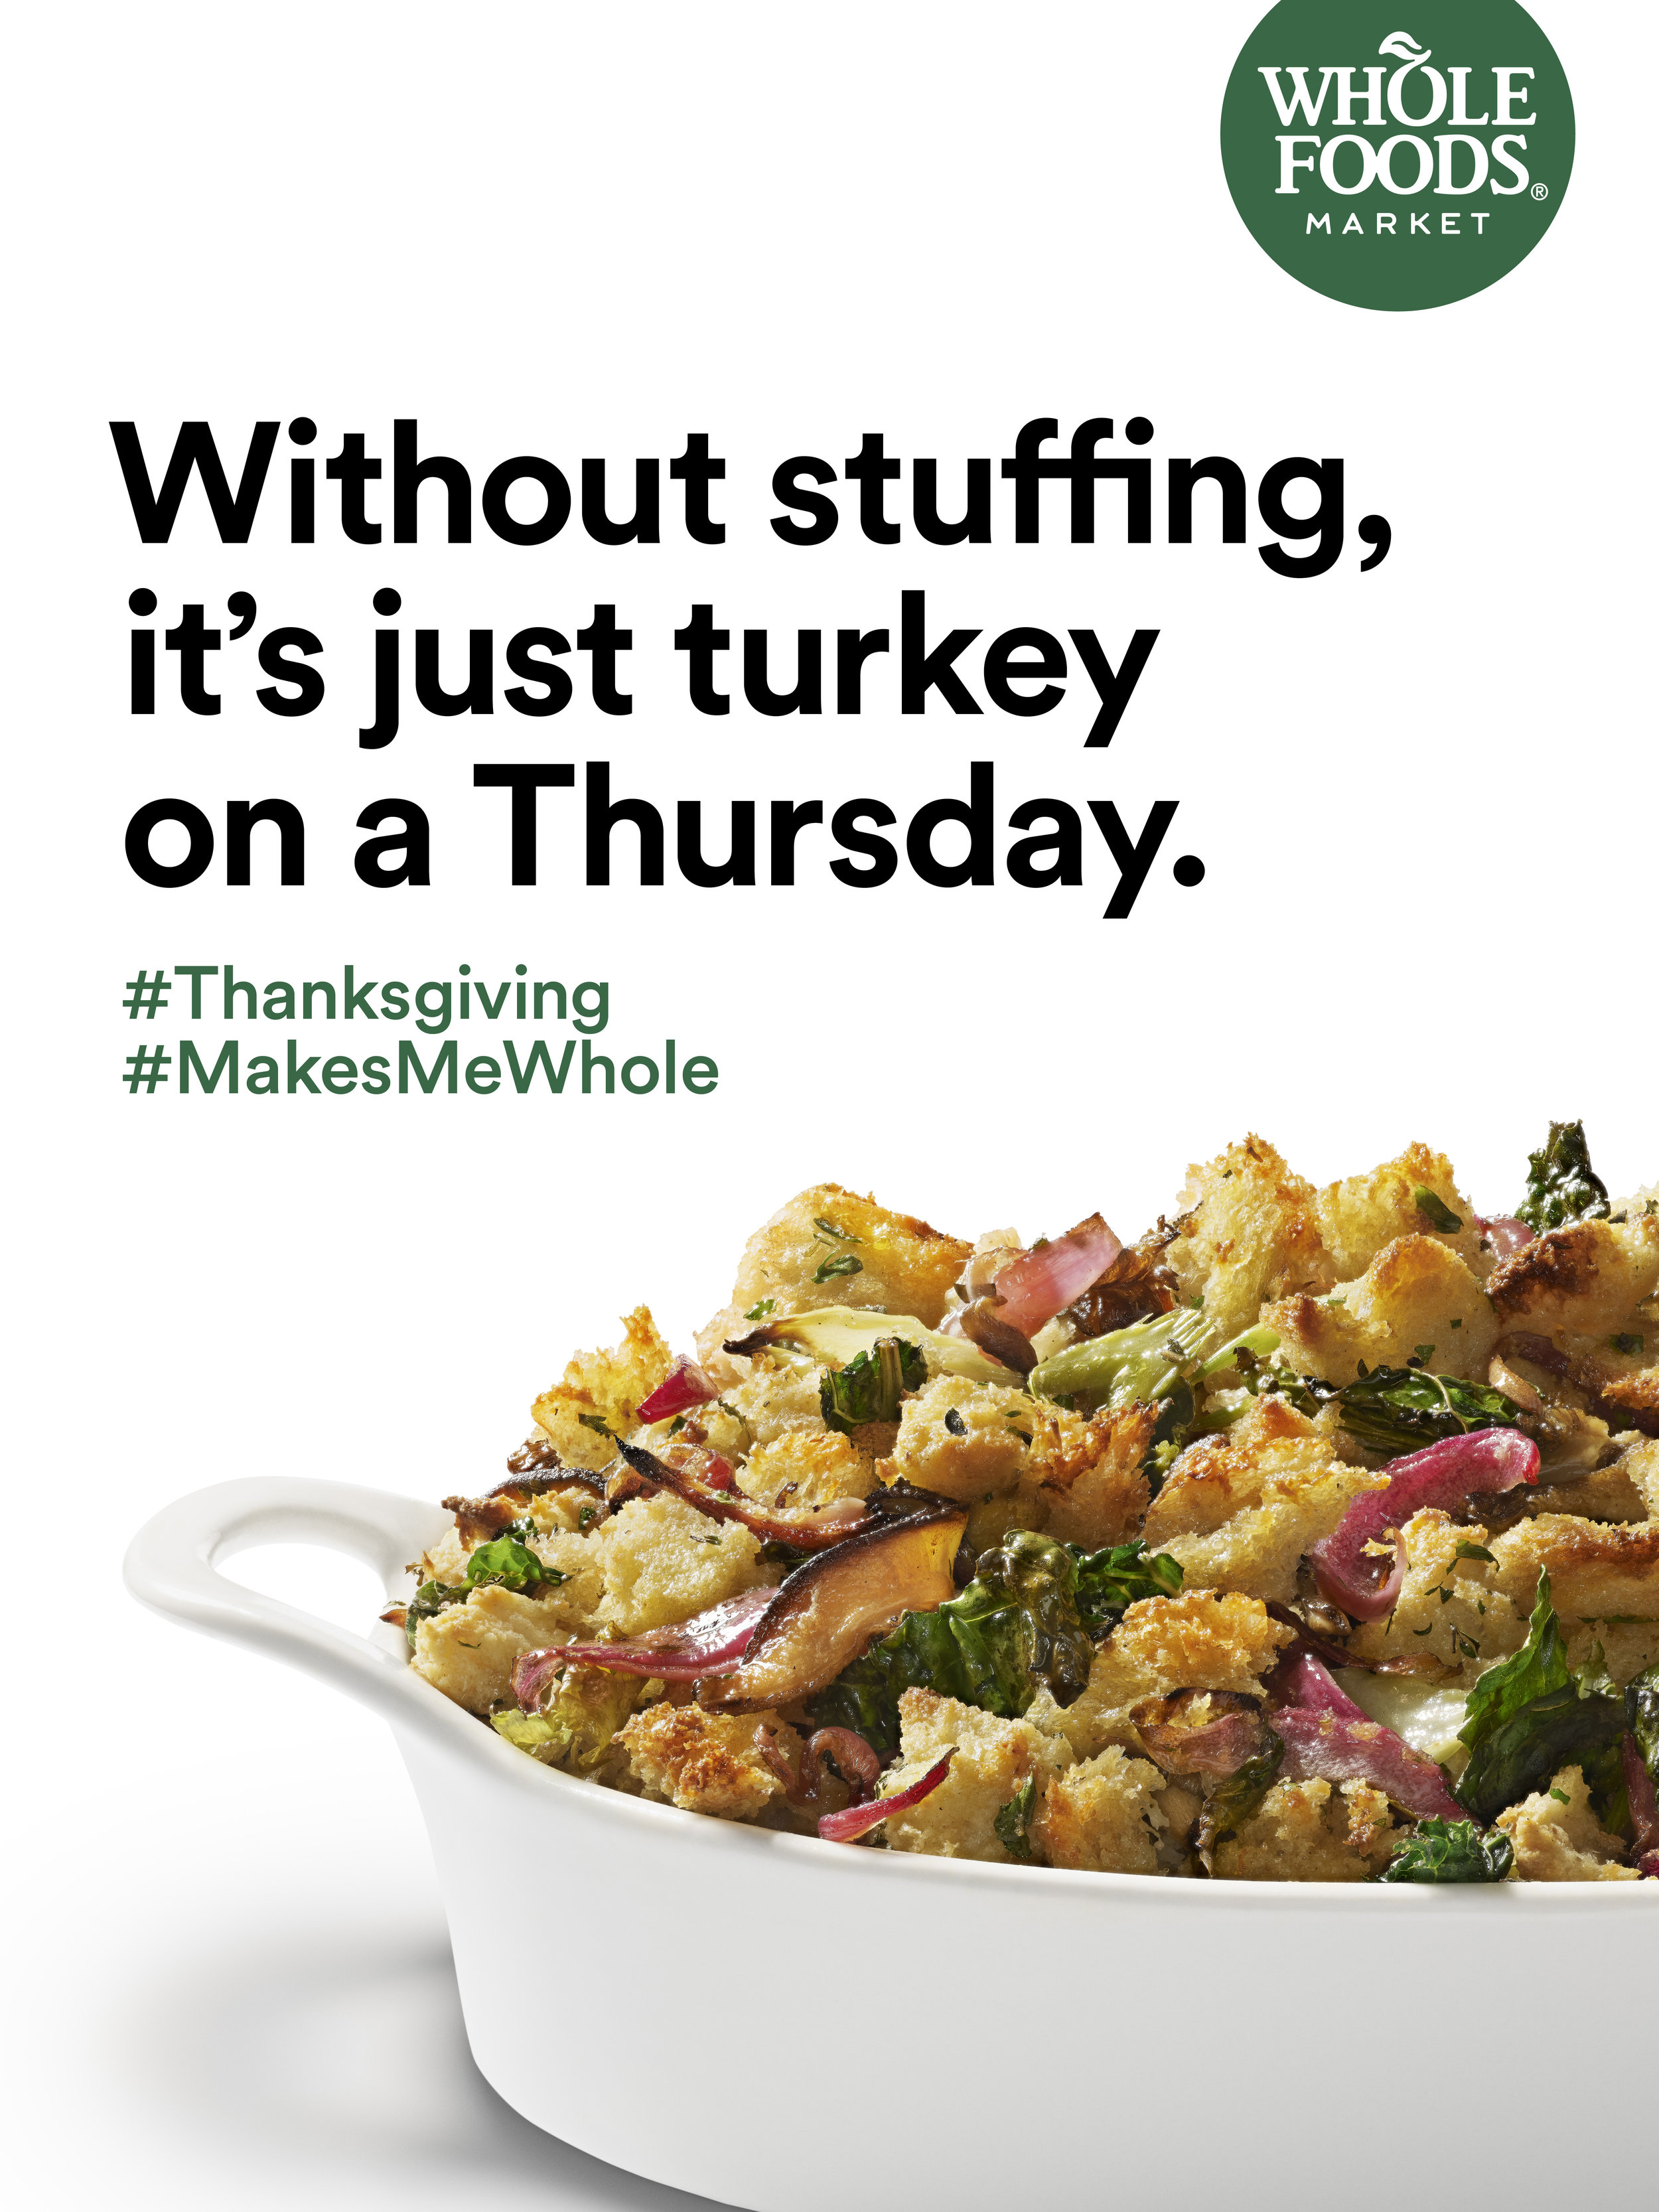 WFM_Harvest_Posters_2018_36x48_Stuffing.jpg